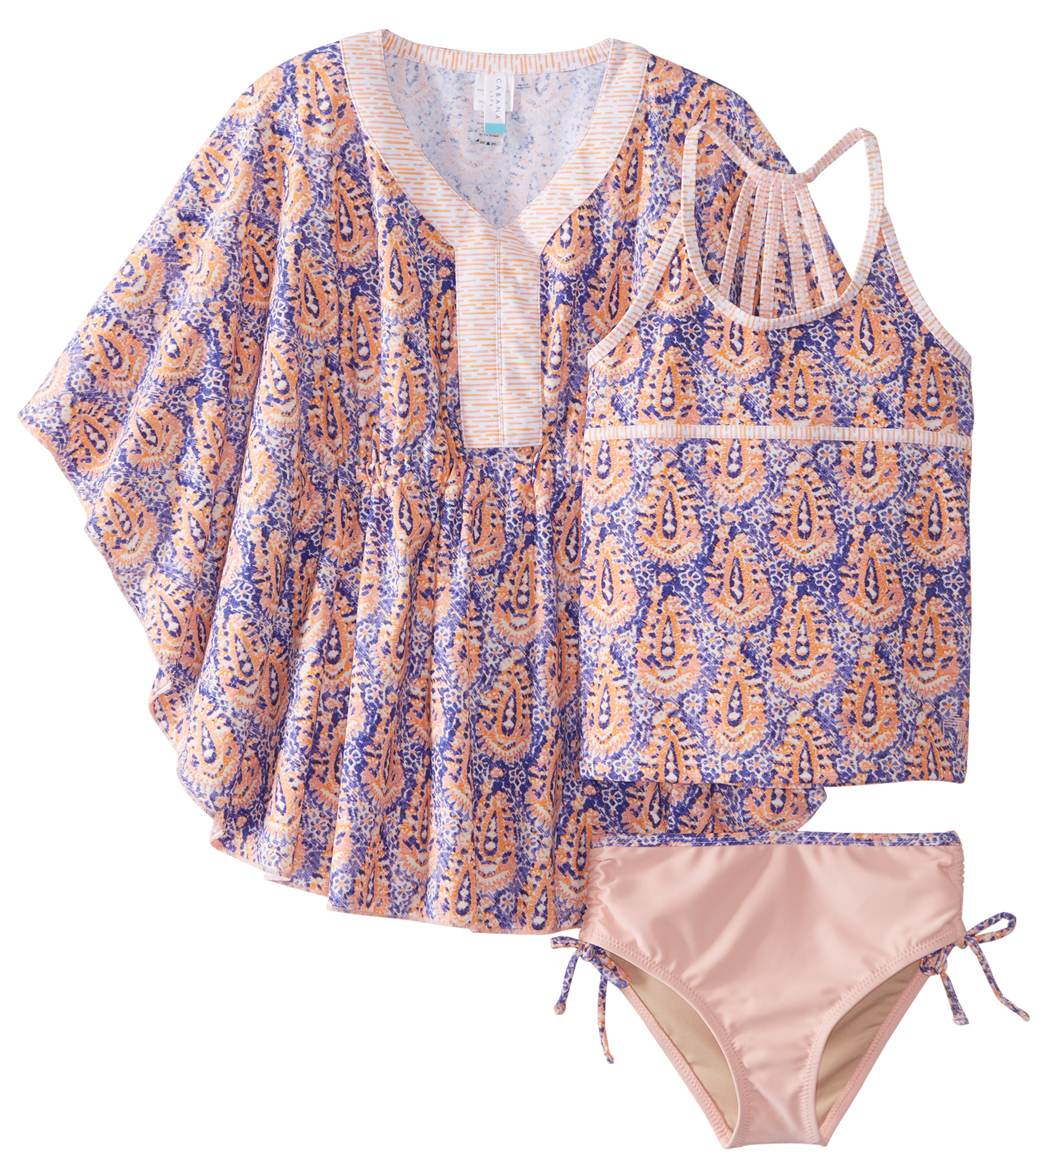 003f221922 Cabana Life Girls  Jaipur Swimsuit and Cover Up Set (Little Kid